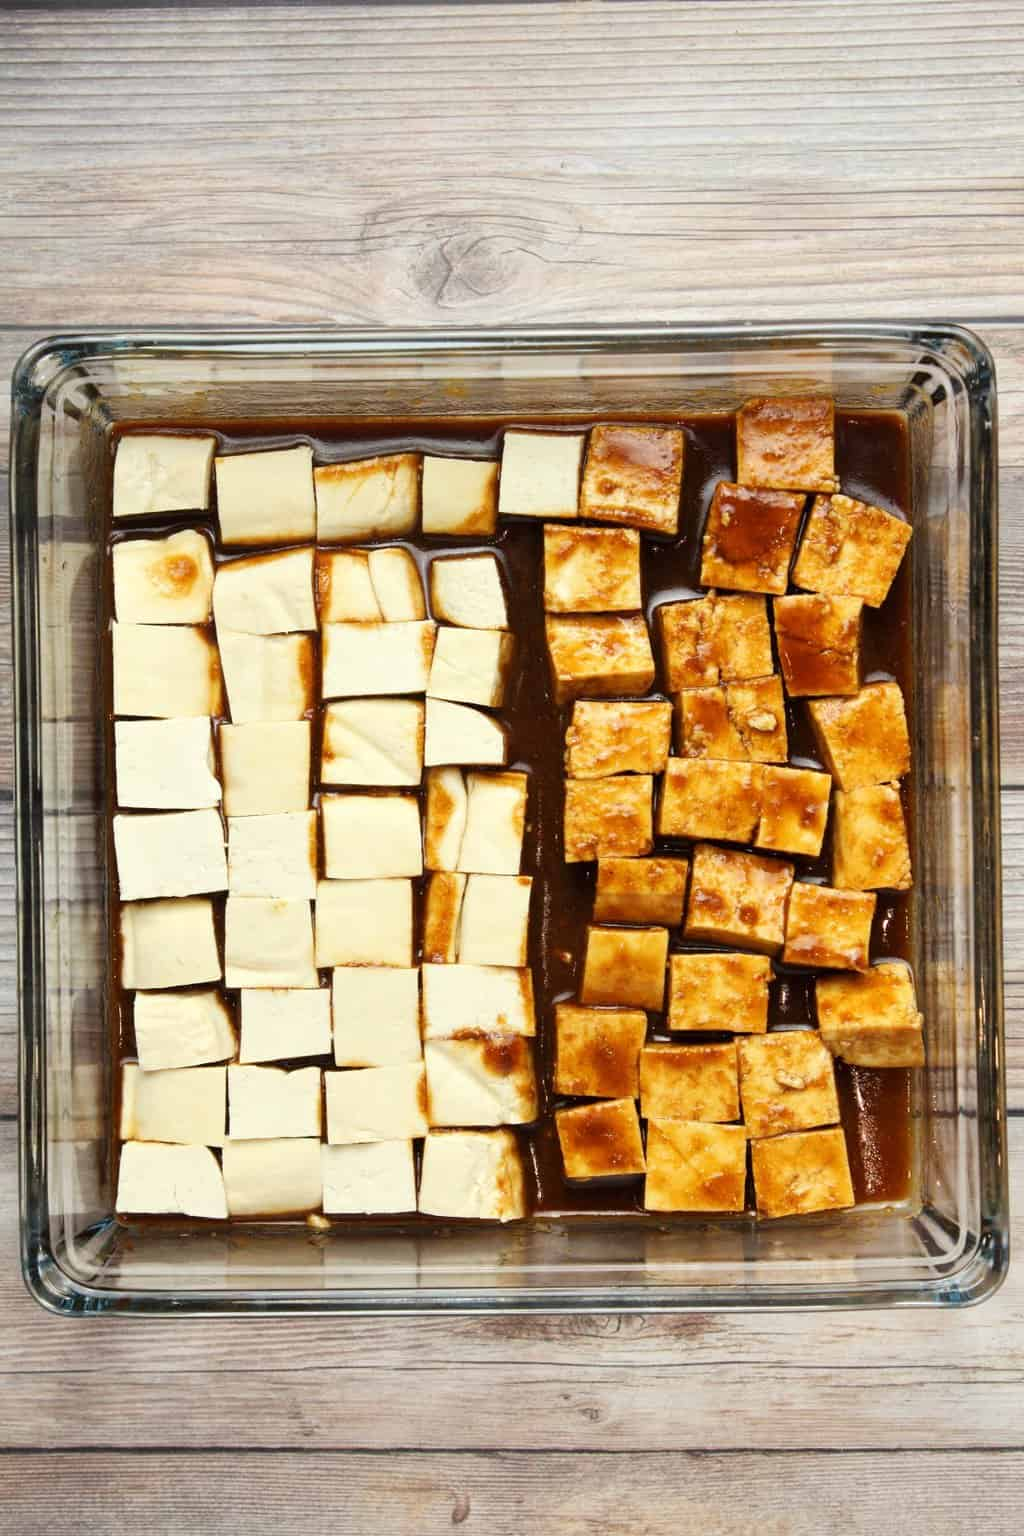 Tofu marinading in a tofu marinade sauce in a glass dish.